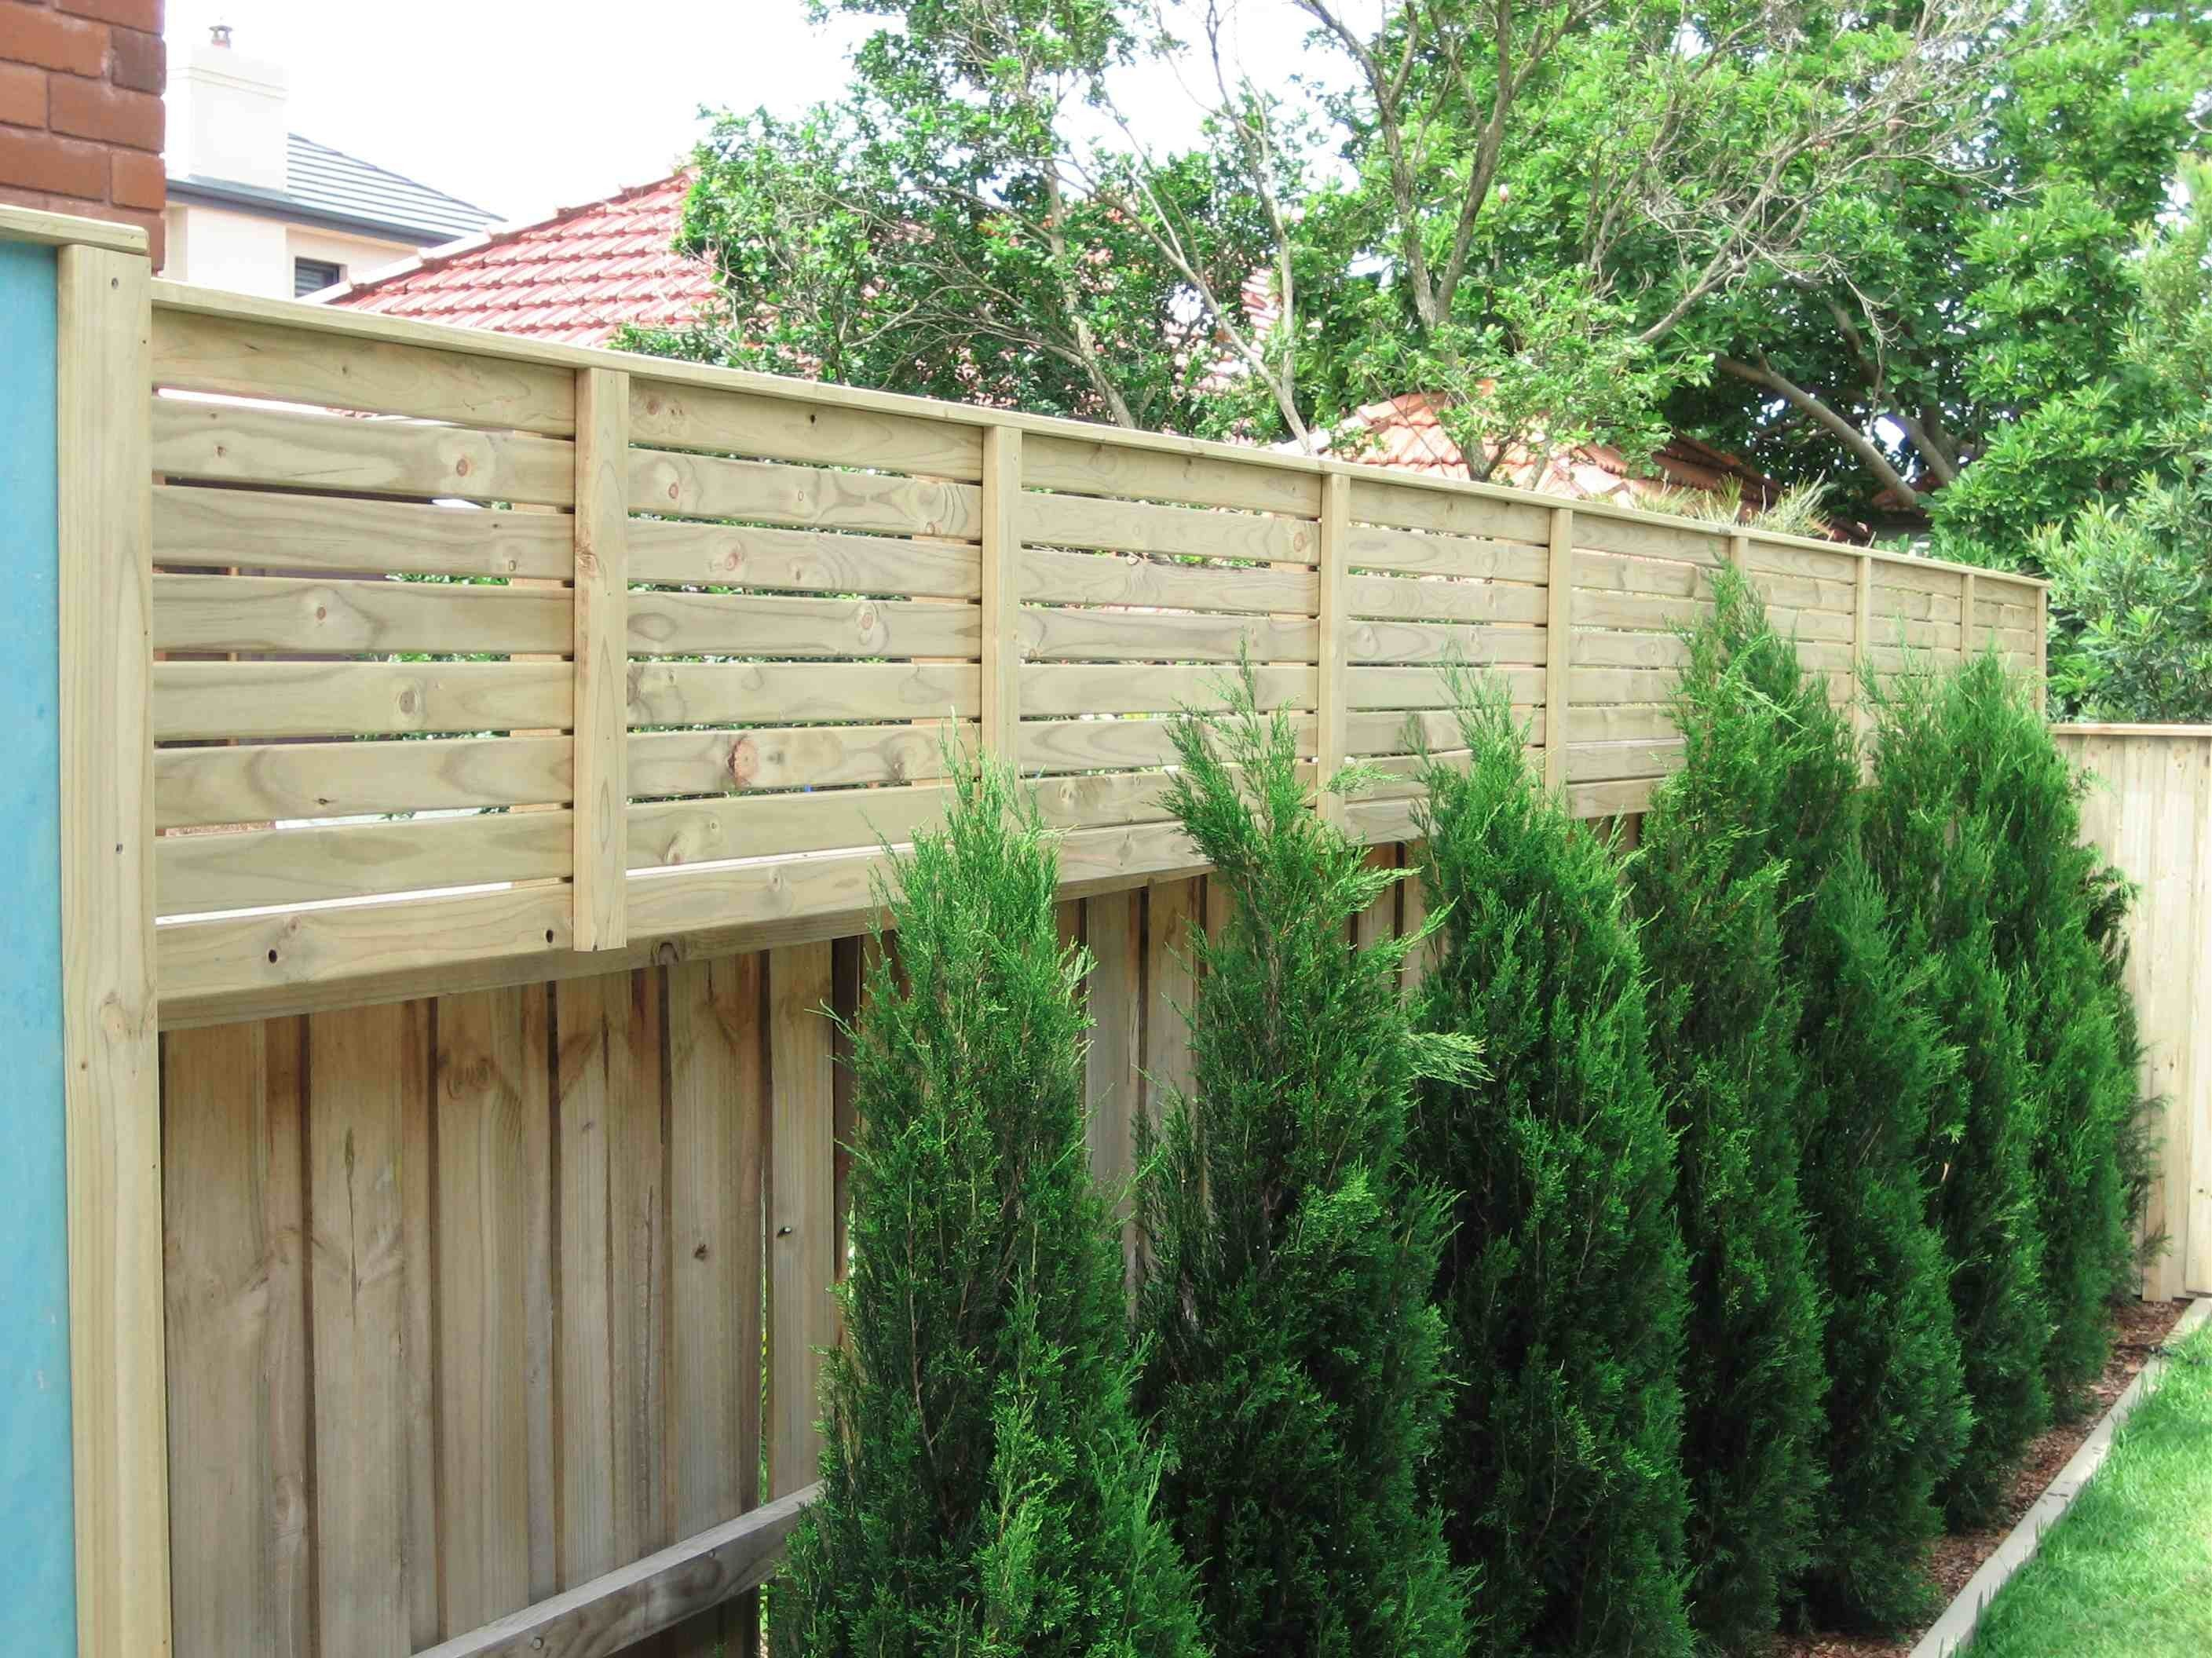 Privacy screen against fence google search house ideas for Landscaping ideas for privacy screening